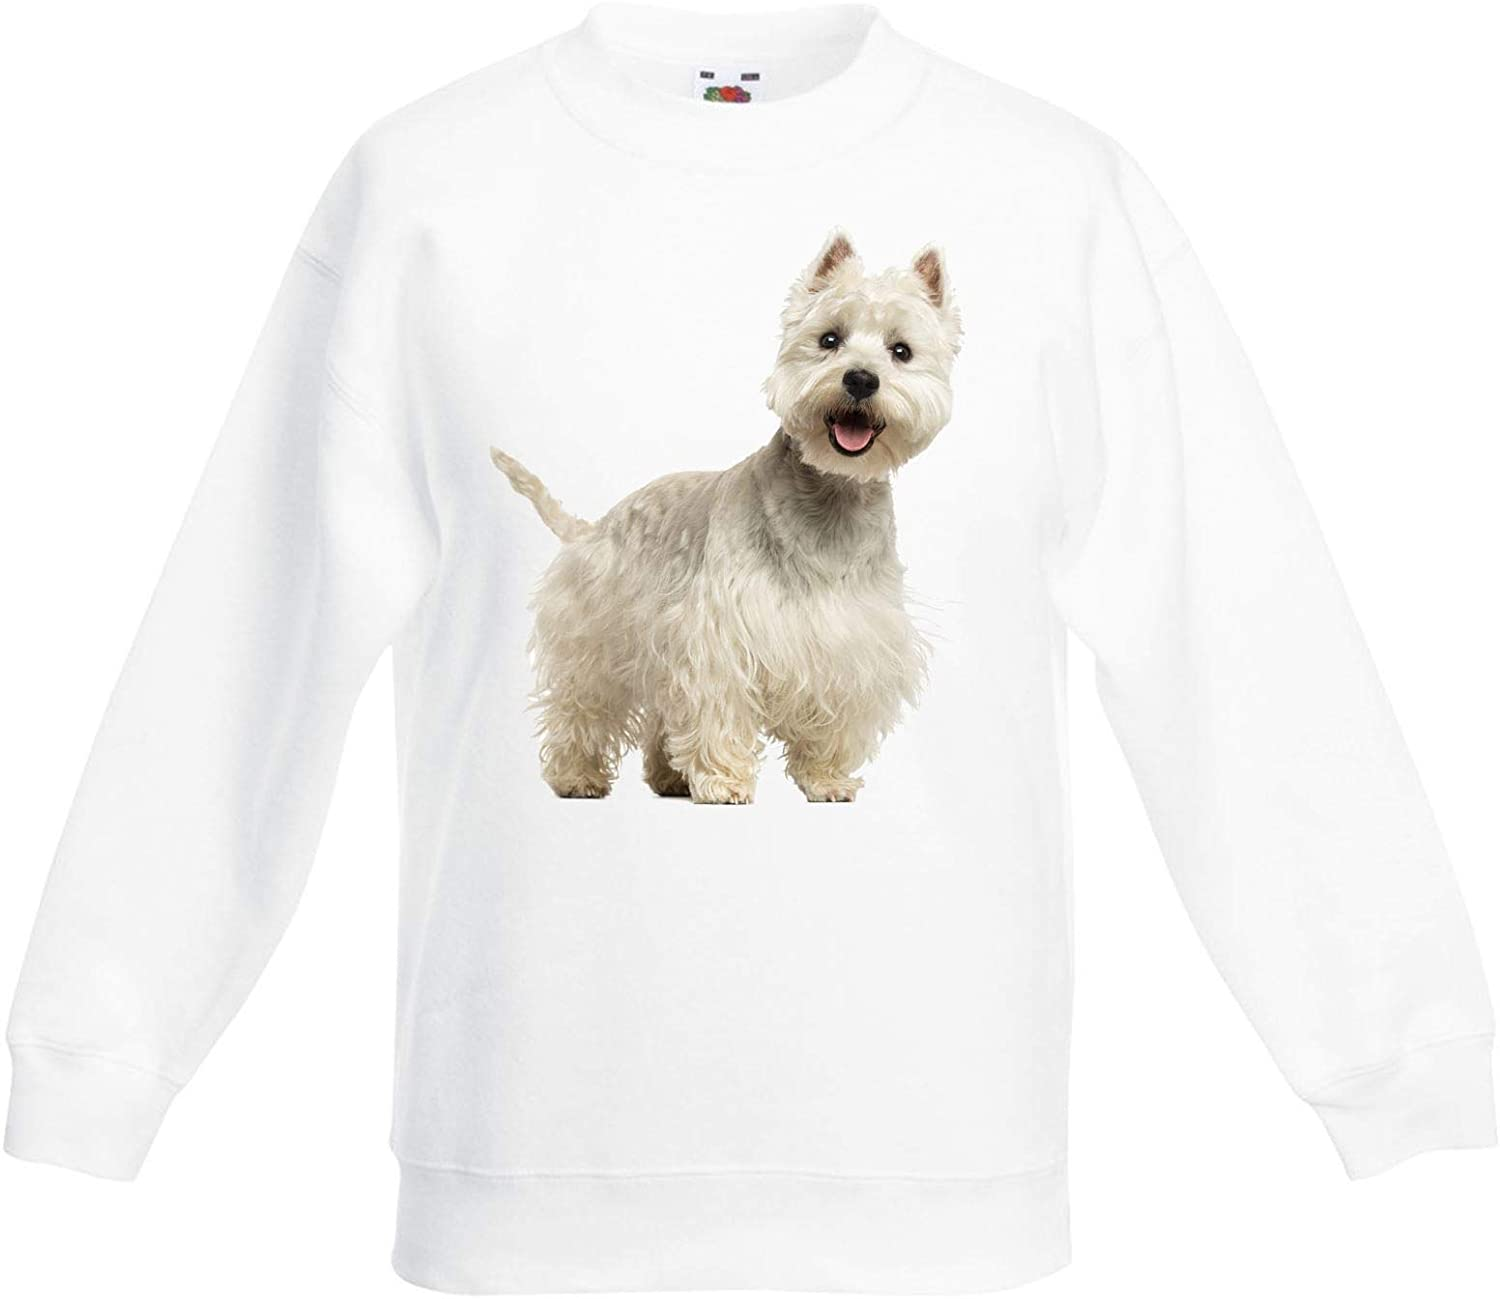 West Highland Terrier Dogs Animals Children's Toddler Kids Sweatshirt Jumper